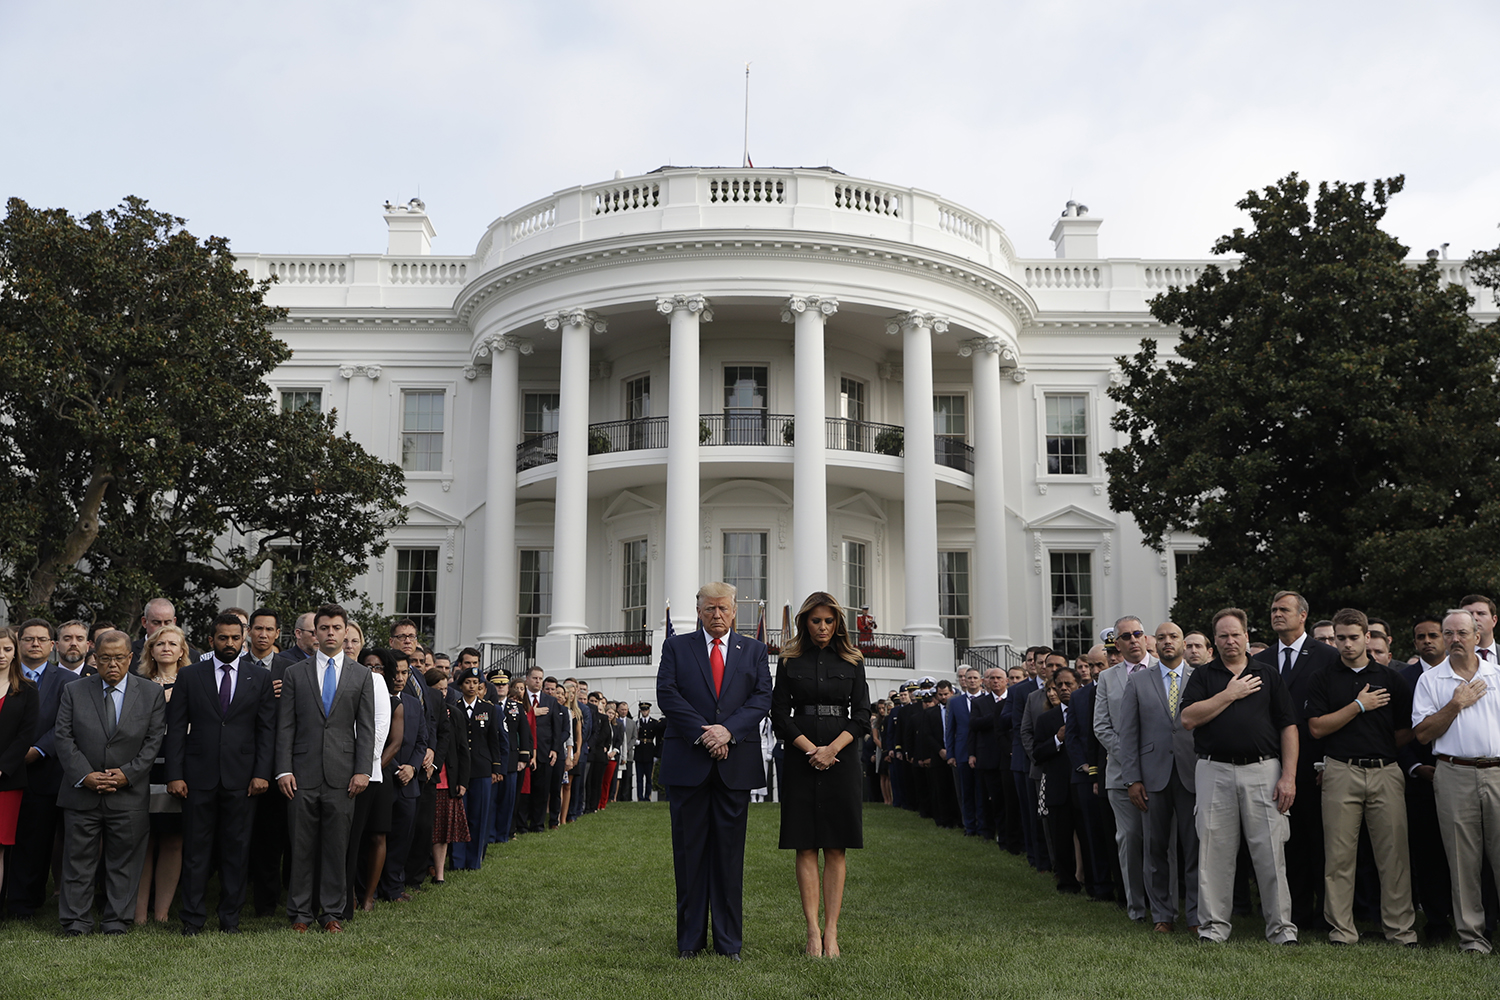 President Donald Trump and first lady Melania Trump participate in a moment of silence honoring the victims of the Sept. 11 terrorist attacks, on the South Lawn of the White House, Wednesday, Sept. 11, 2019, in Washington. (Evan Vucci/AP)